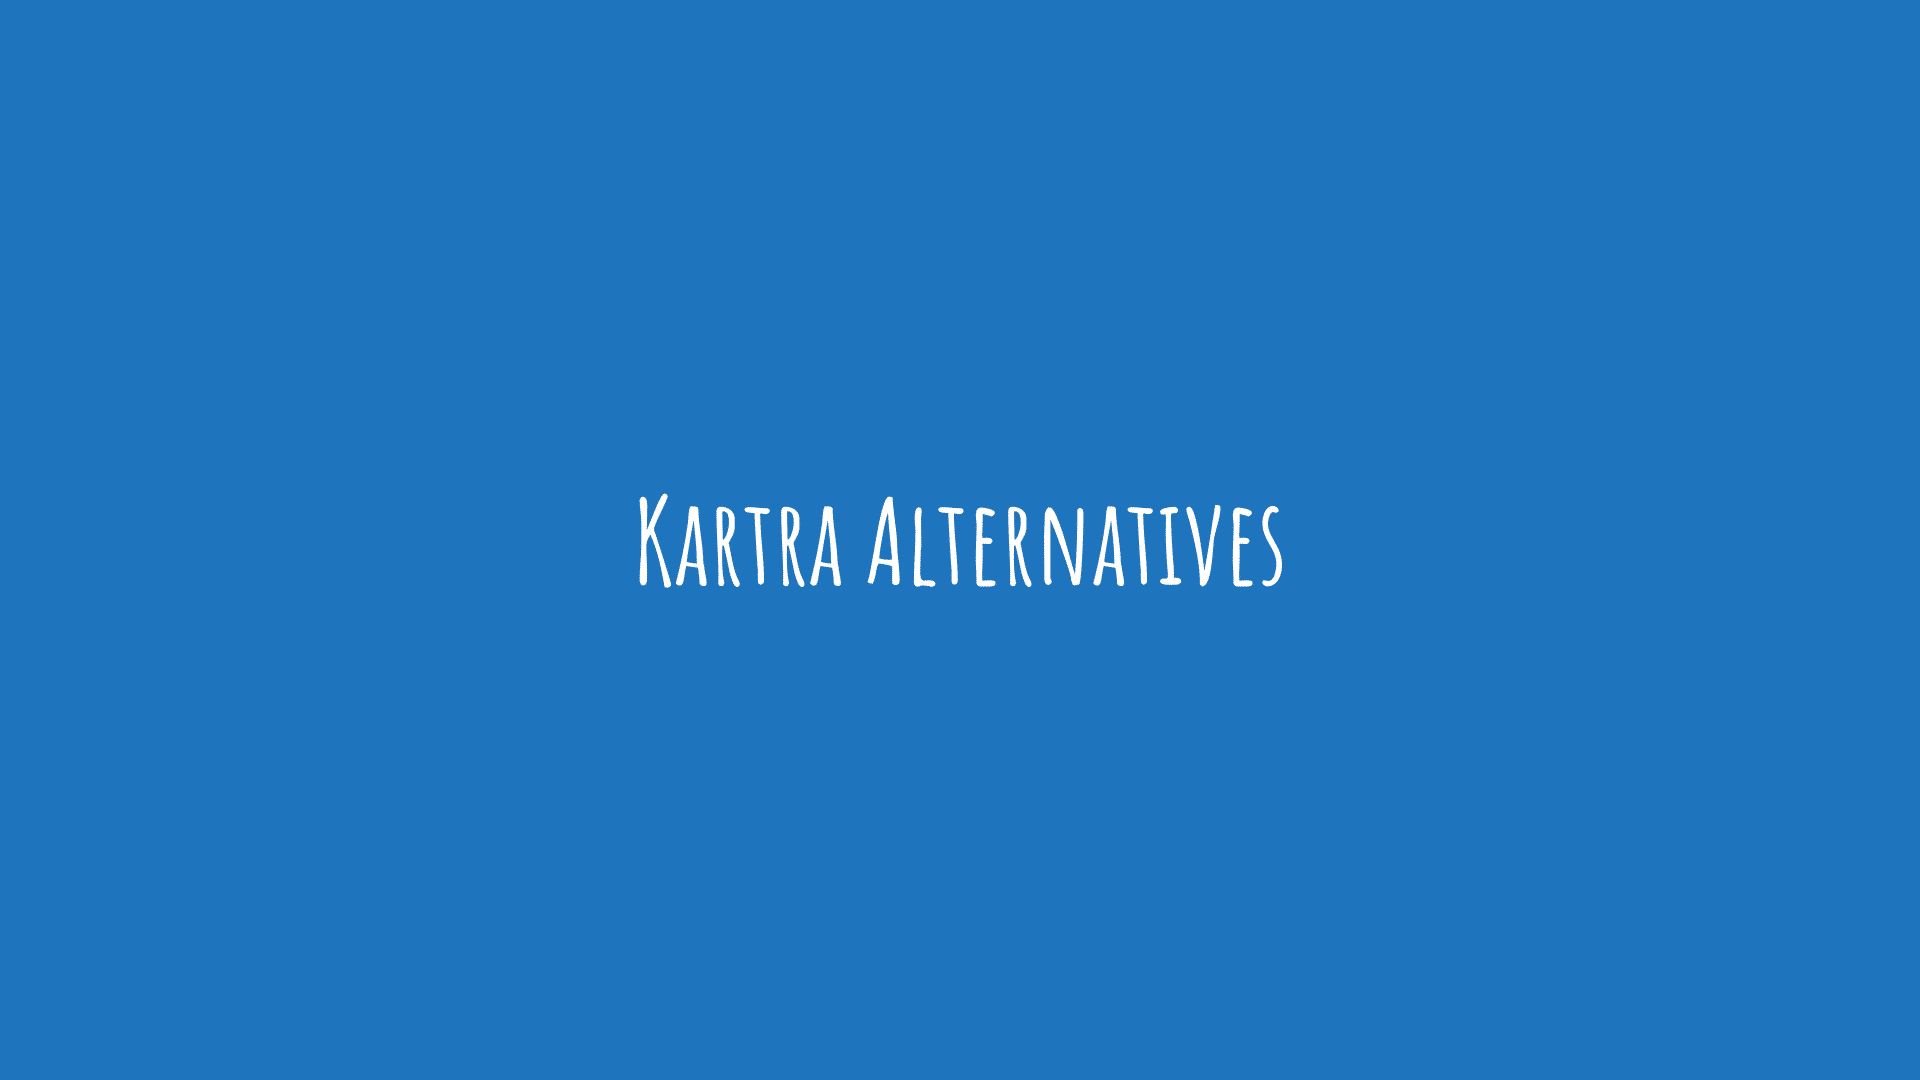 Kartra Alternatives